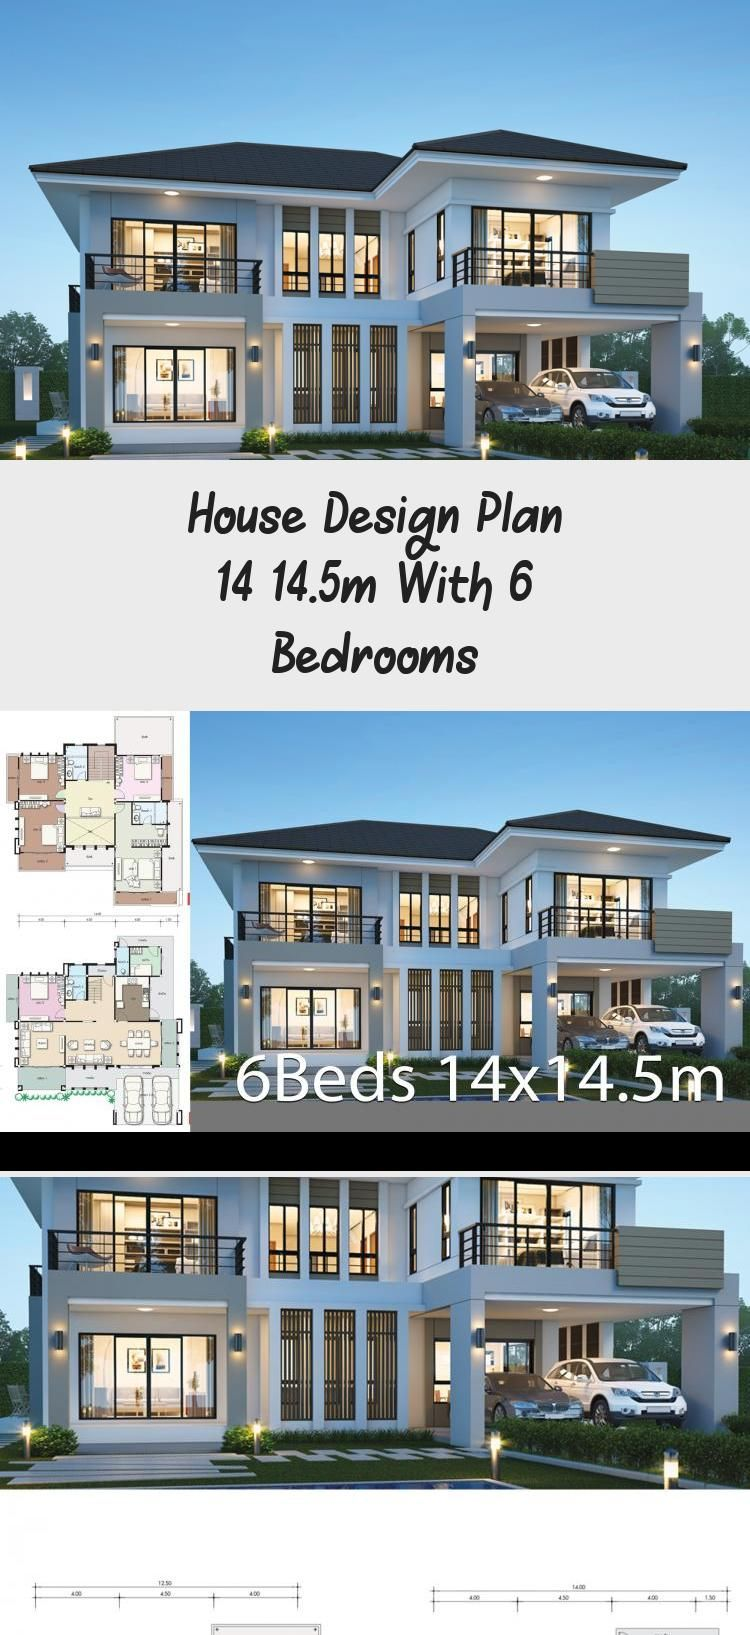 House Design Plan 14x14 5m With 6 Bedrooms Home Design With Plansearch Countryhouseplans Hou In 2020 Home Design Plans Affordable House Plans Victorian House Plans